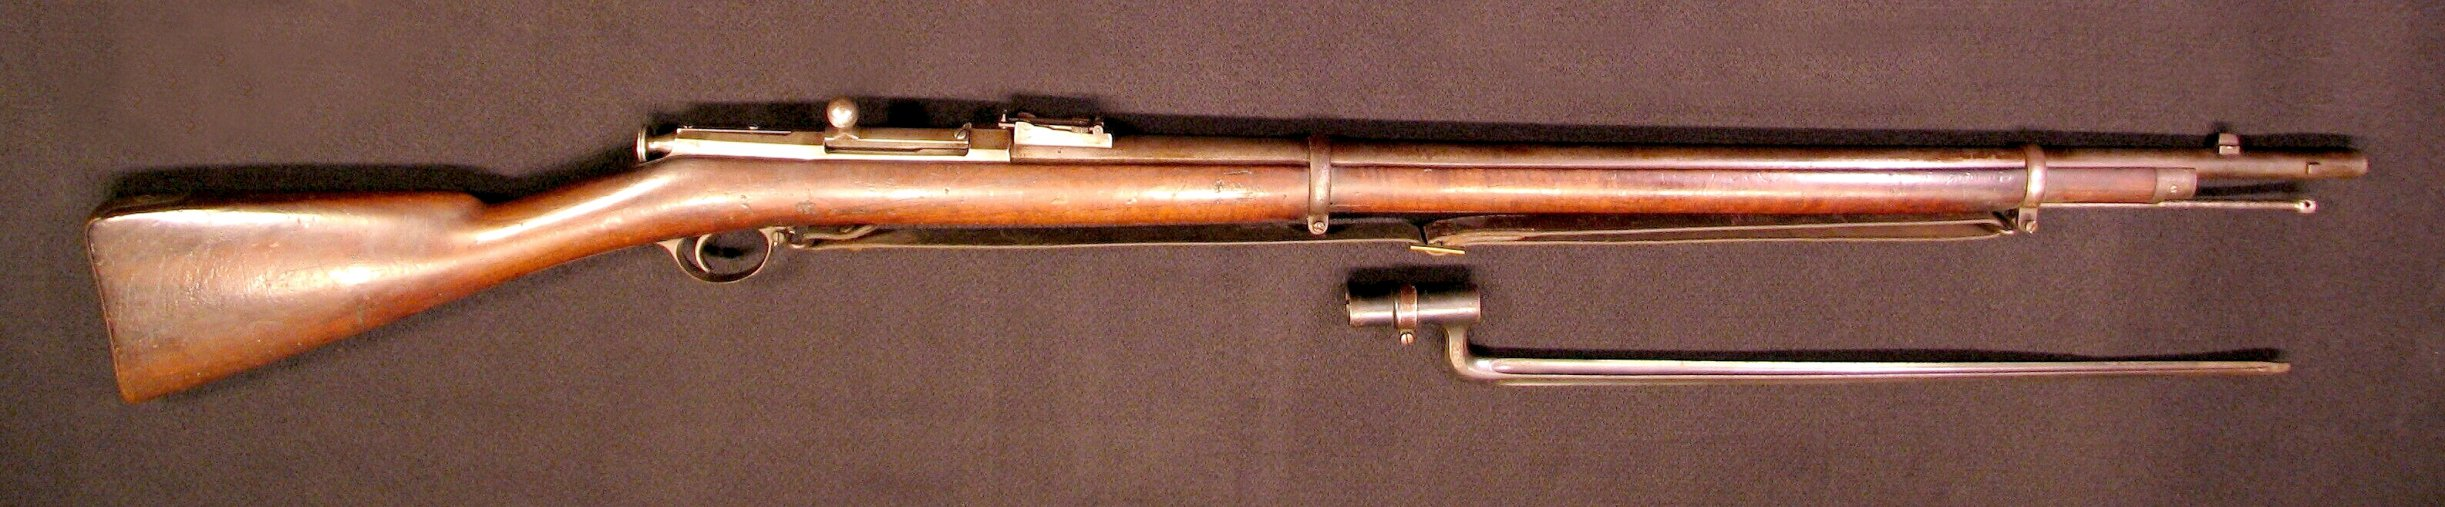 Click image for larger version.  Name:Russian M1870 Berdan II Infantry Rifle - 001A.jpg Views:50 Size:285.9 KB ID:1967417